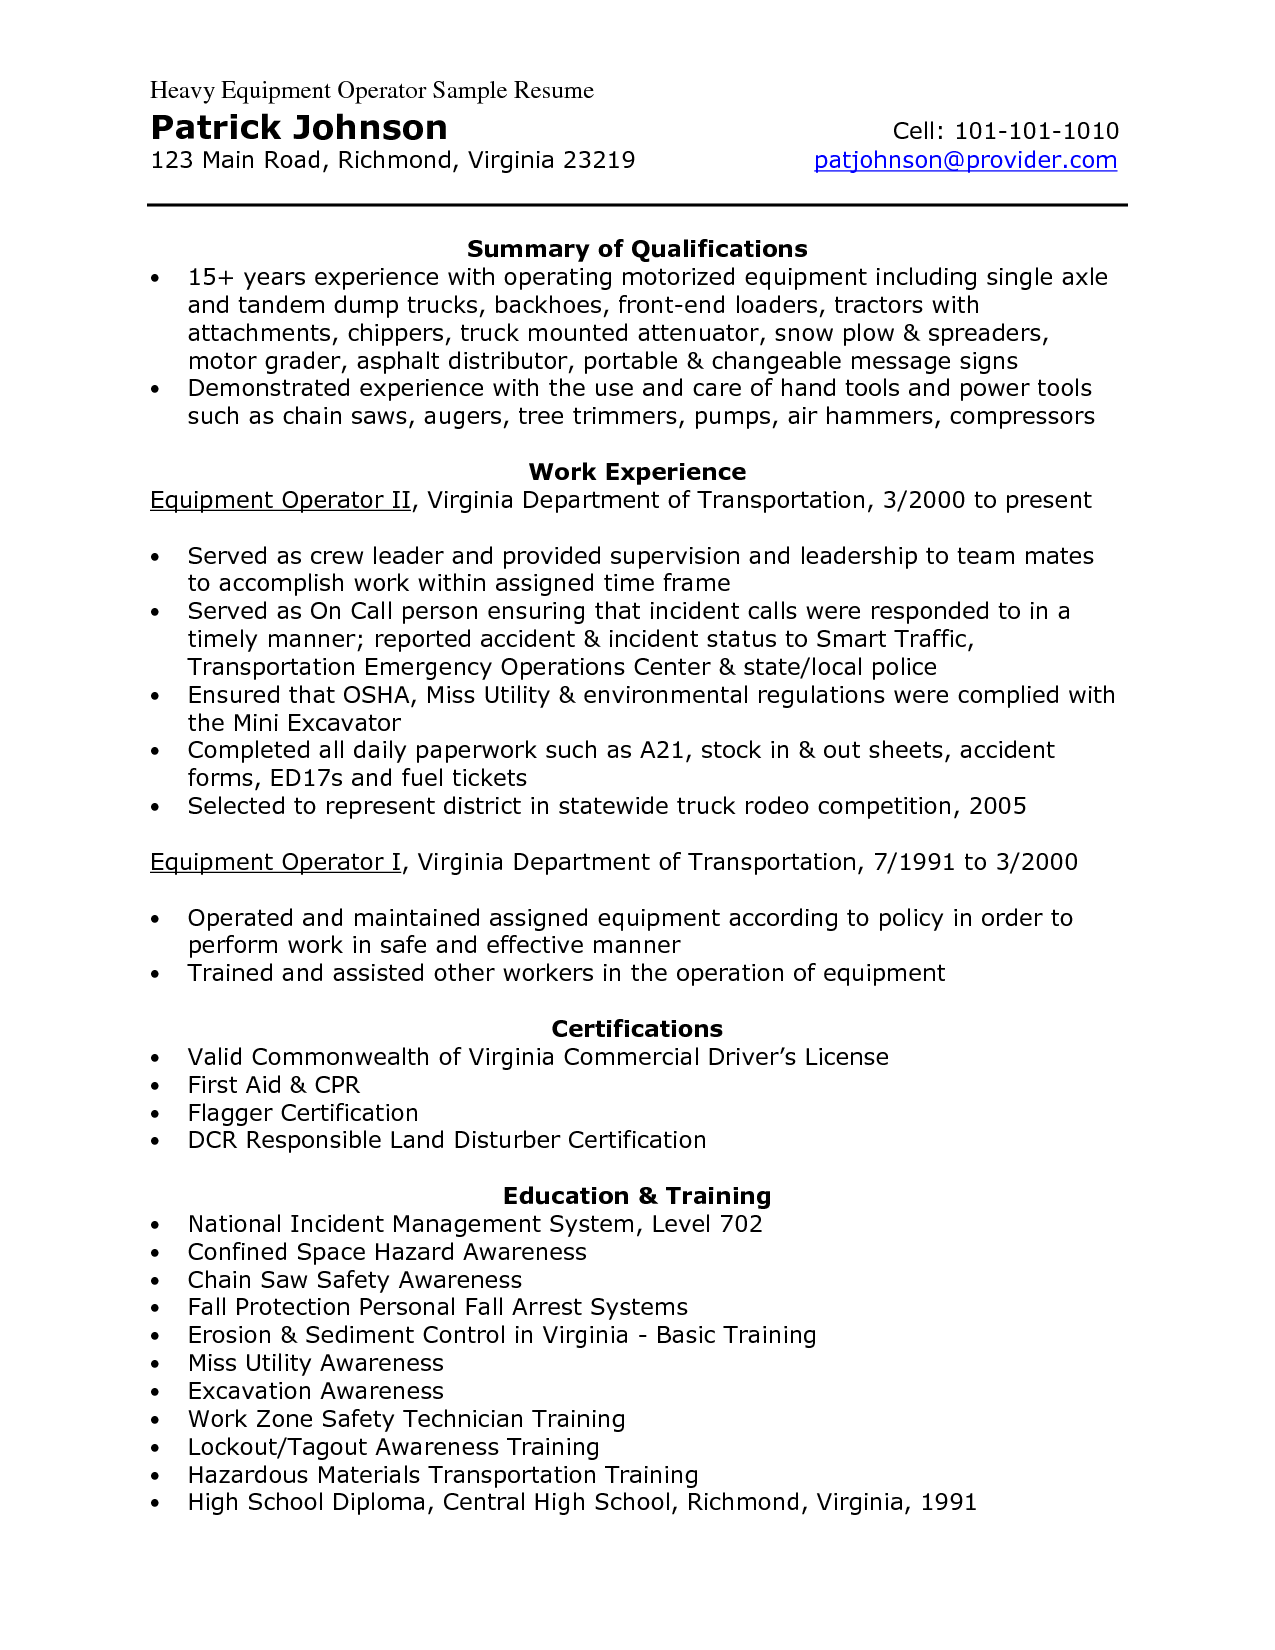 resume examples summary qualifications curriculum vitae format resume examples summary qualifications images about resumes patrick brian entry images about resumes patrick